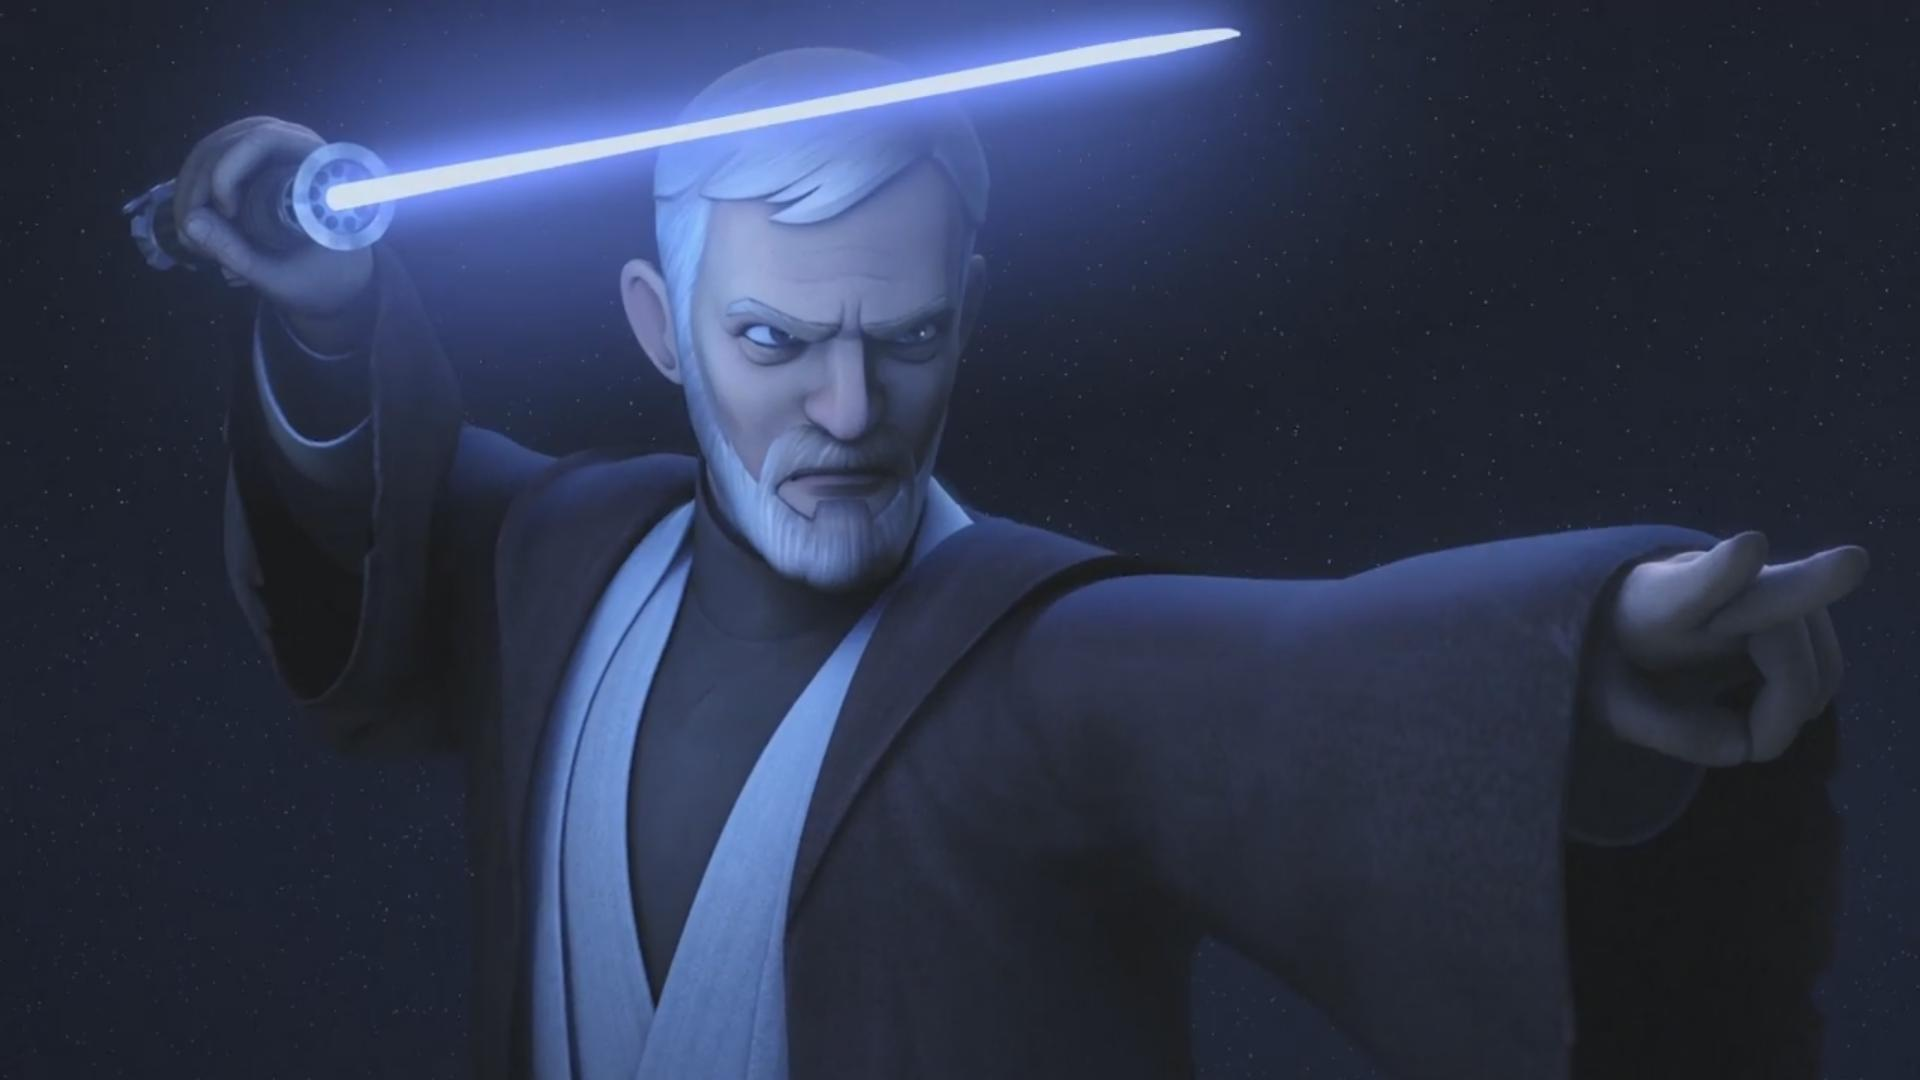 Obi-Wan Kenobi - Star Wars Rebels